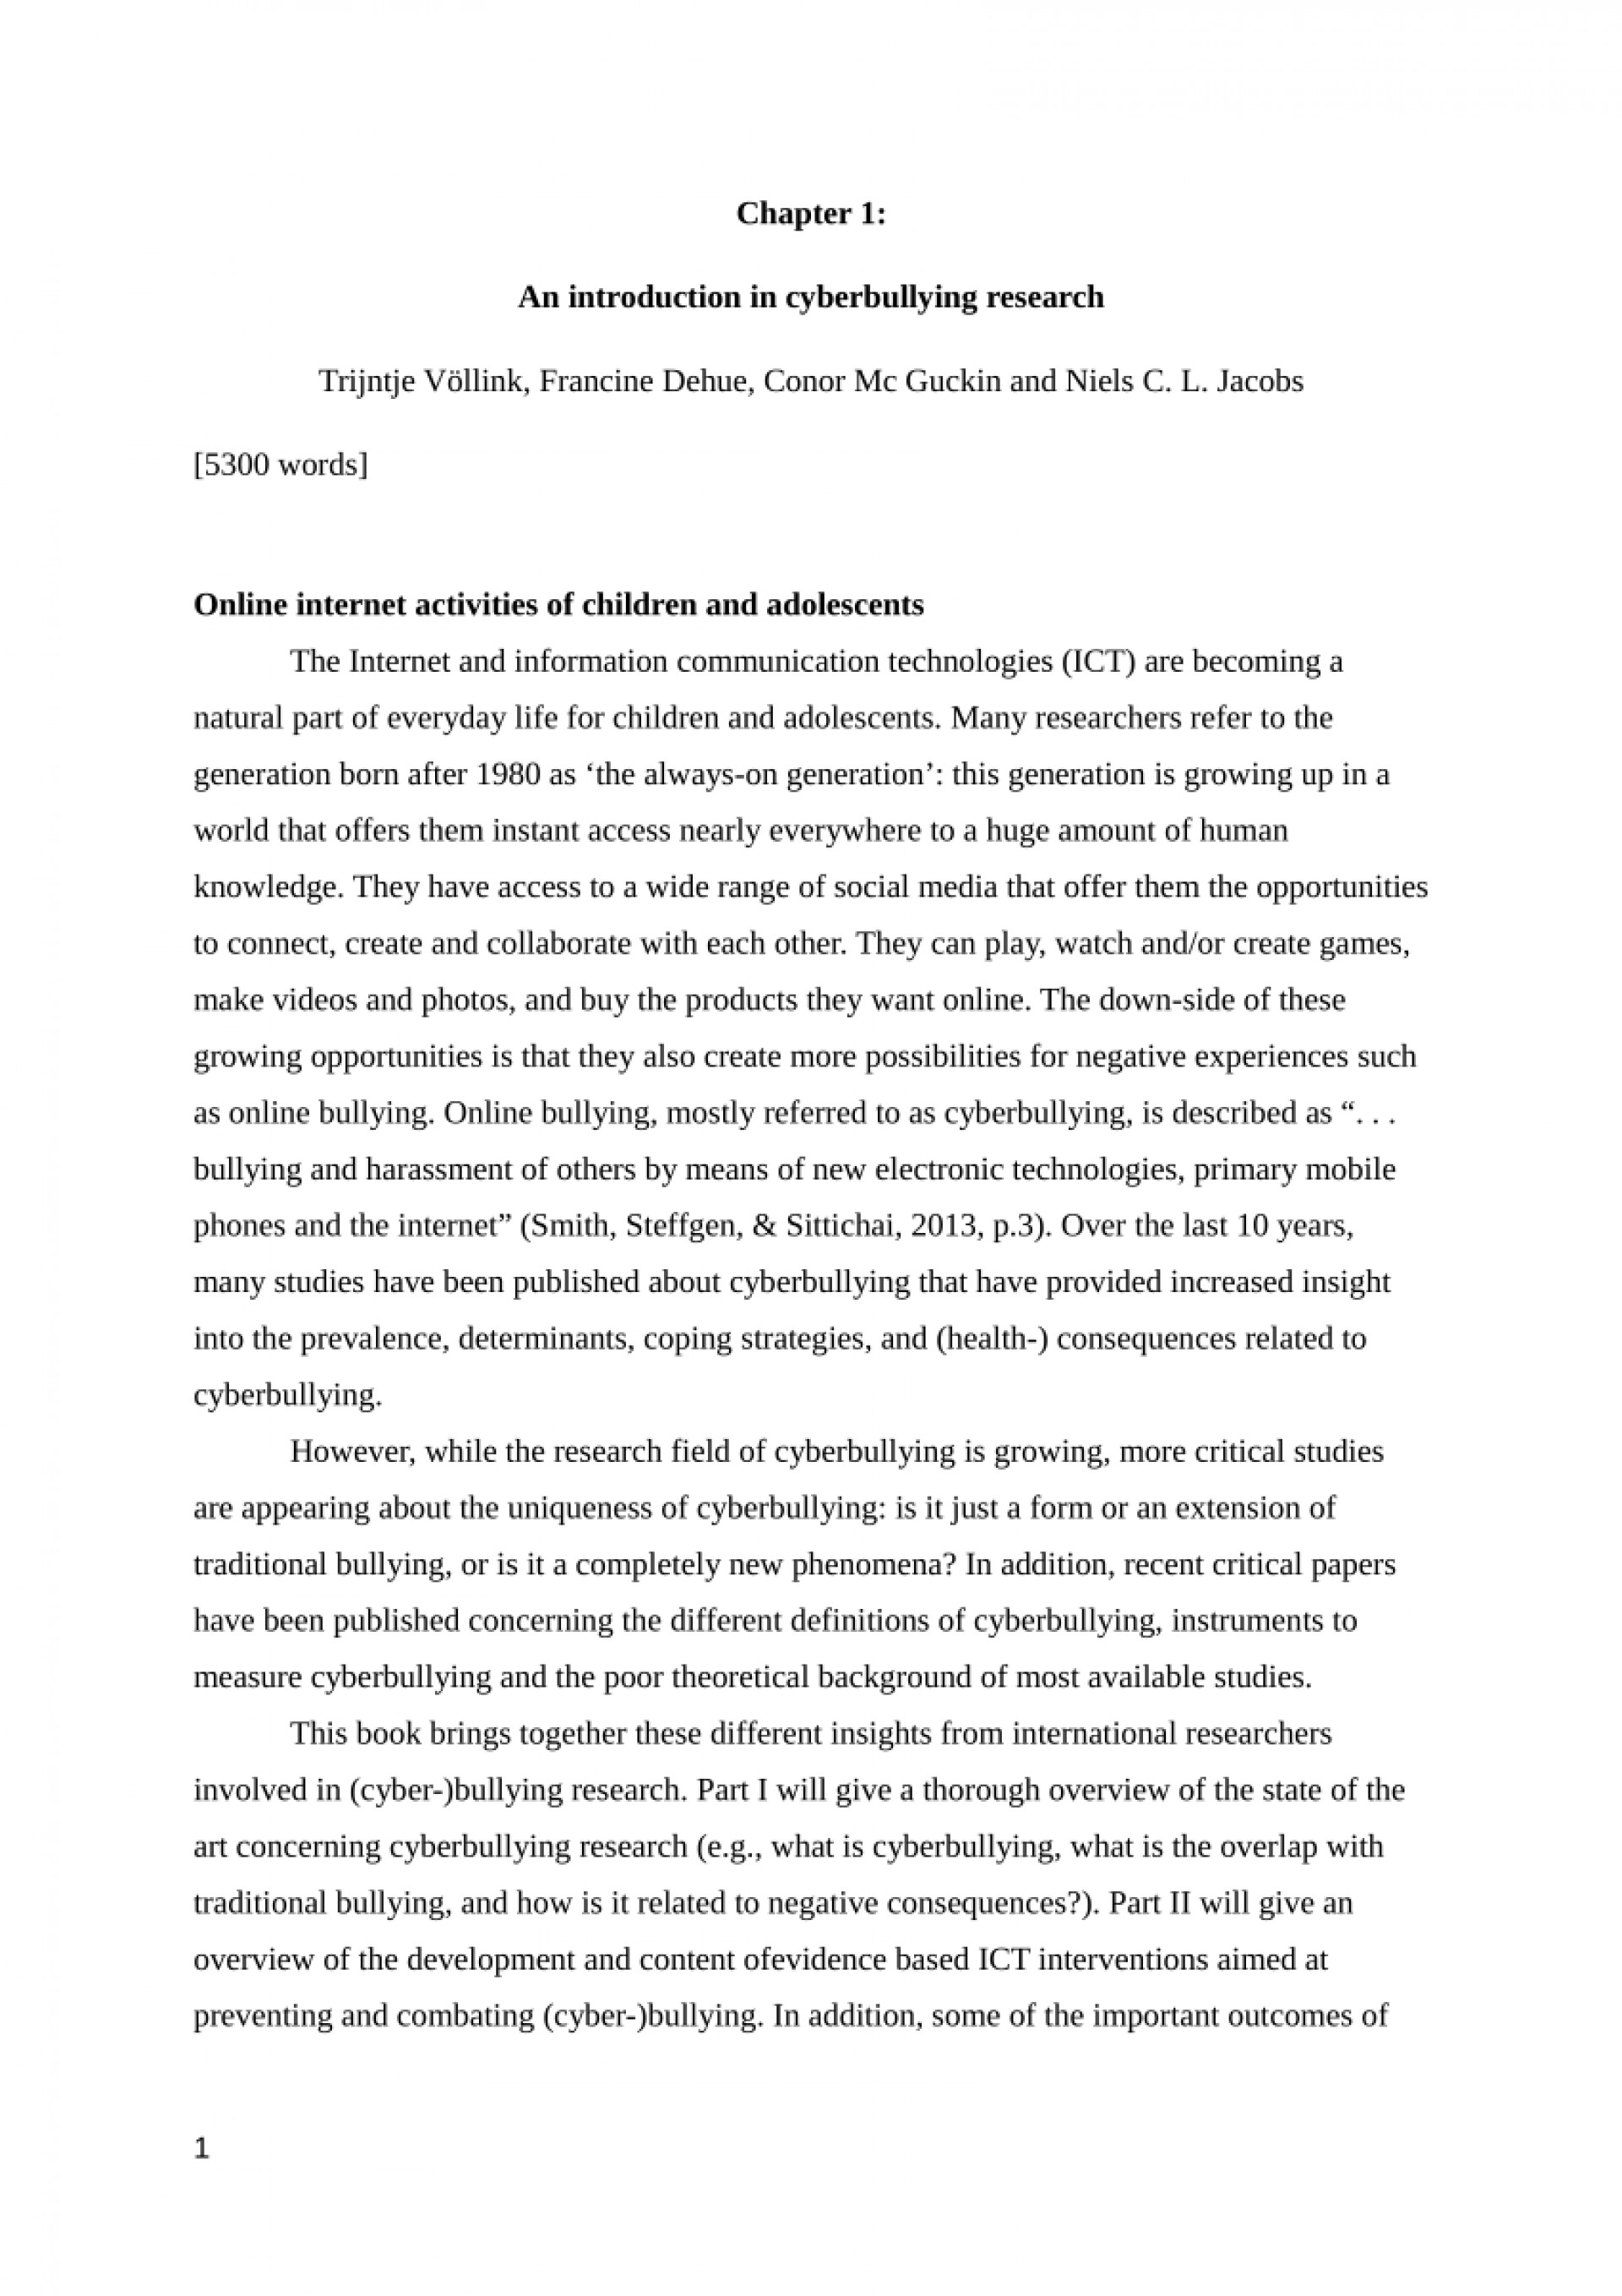 008 Research Paper Largepreview Example Of Conclusion In About Unforgettable Bullying 1920